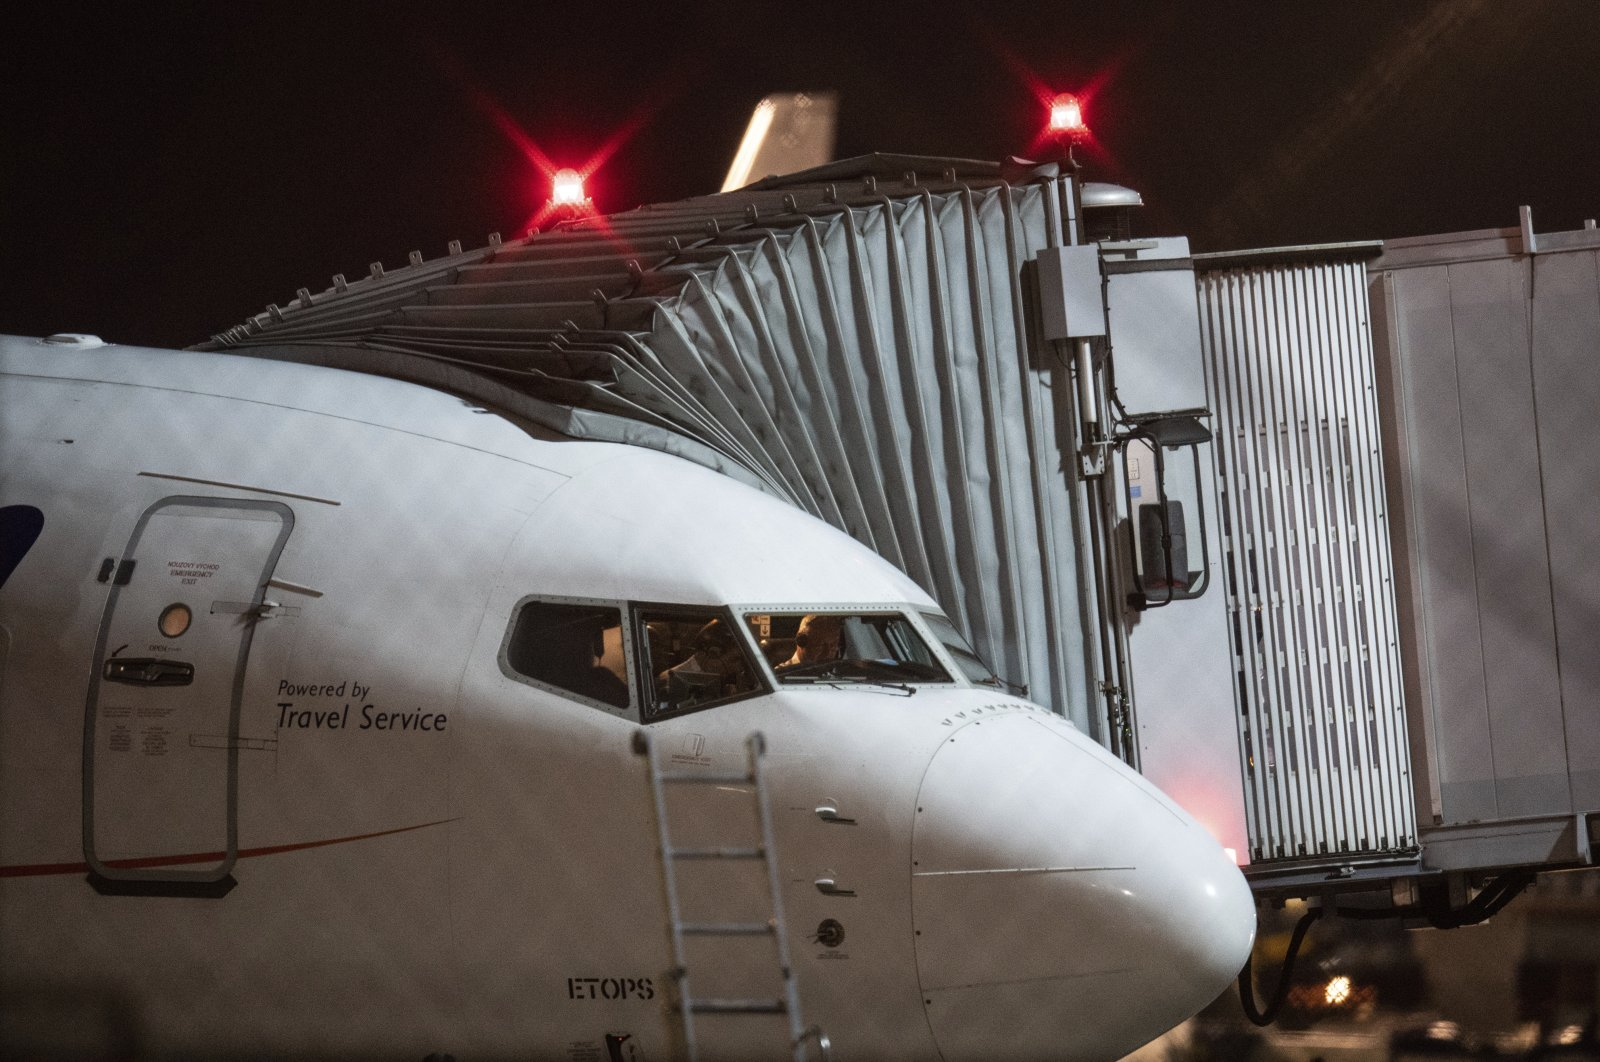 A charter plane stands in position at Frankfurt Airport in Frankfurt, Germany, Oct. 7, 2021. (DPA via AP)